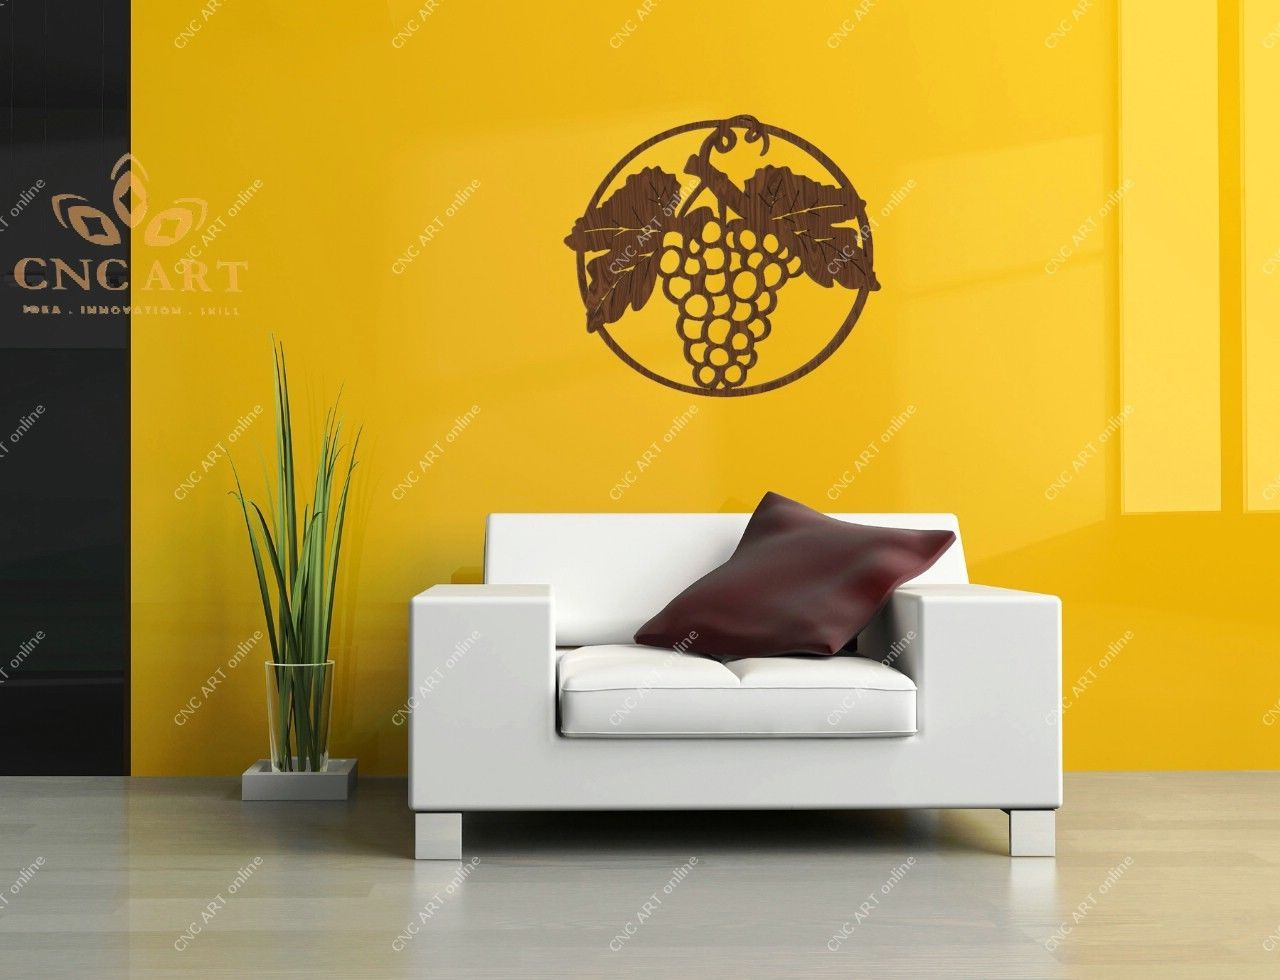 Wall decoration DXF CDR and EPS File For CNC Plasma, Router, LASER (W69)